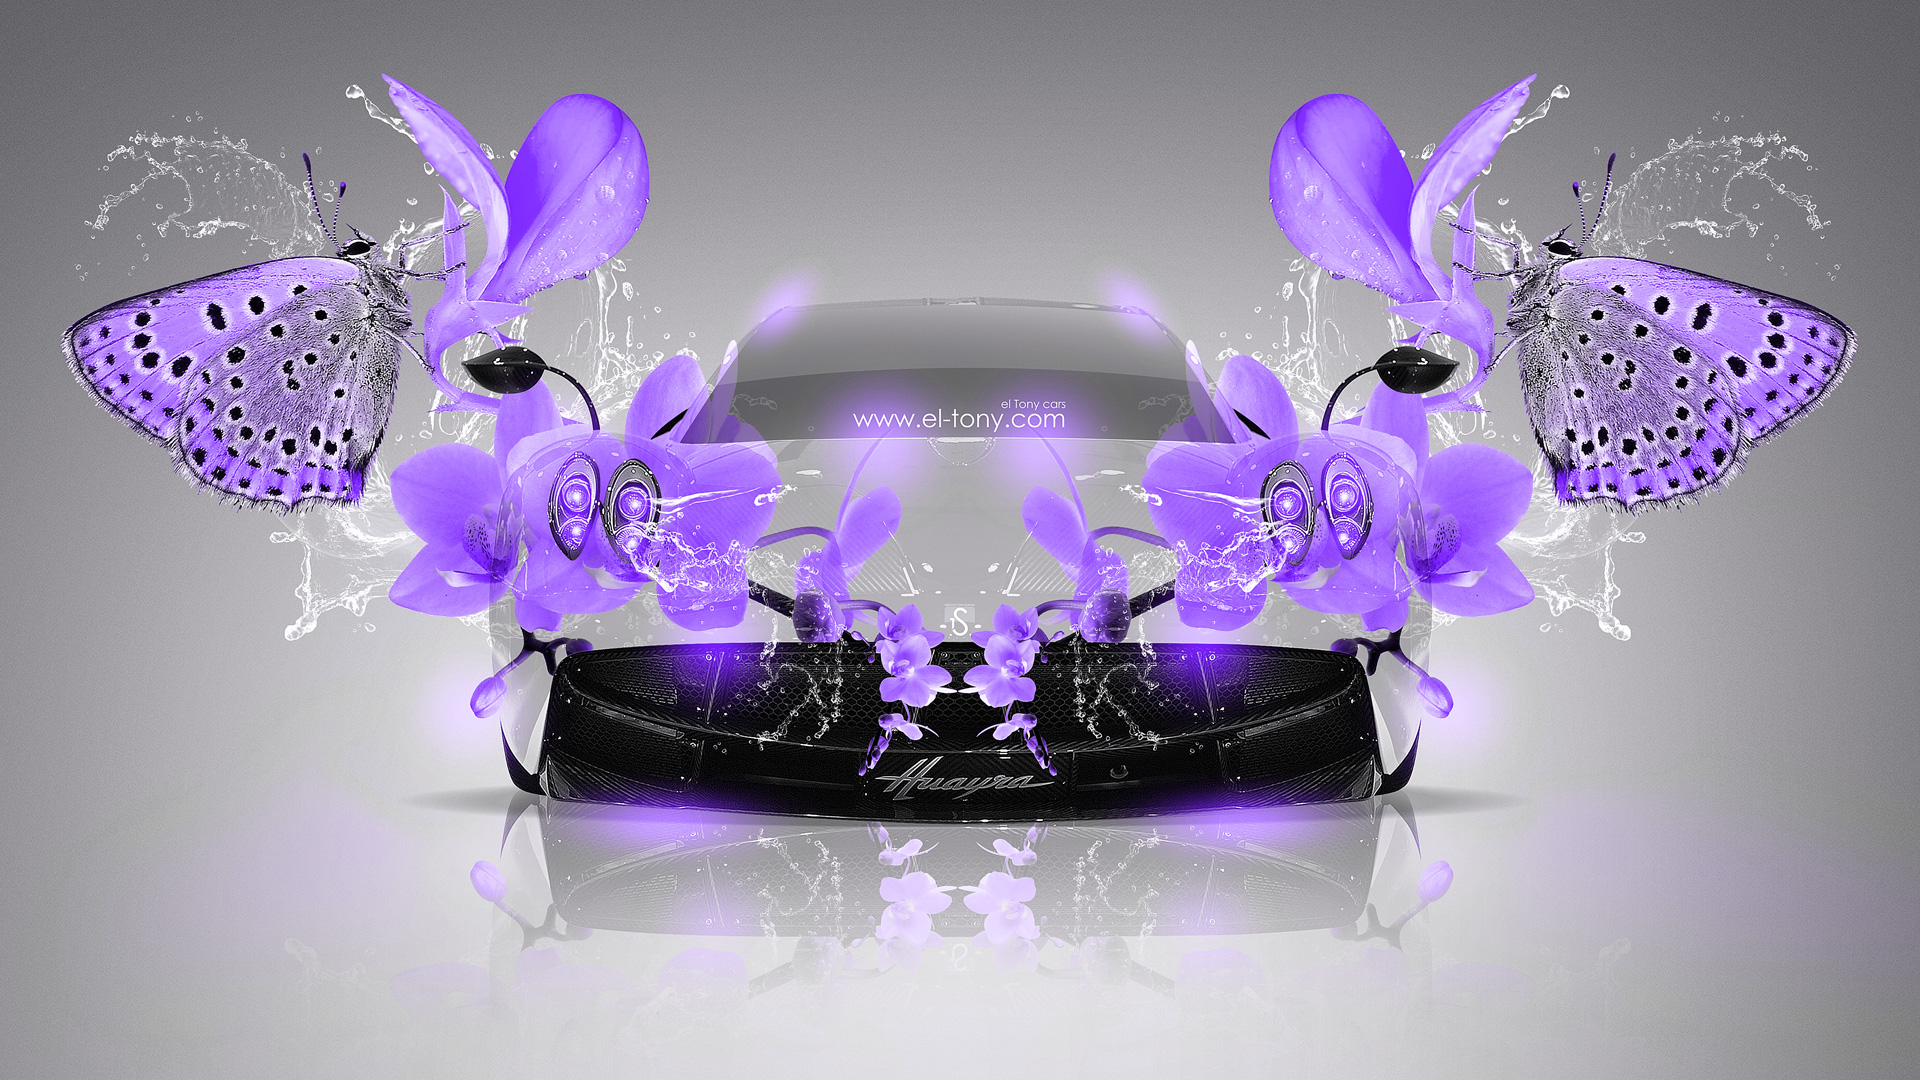 Pagani Huayra Fantasy Violet Neon Butterfly Flowers Car 2014 design by 1920x1080